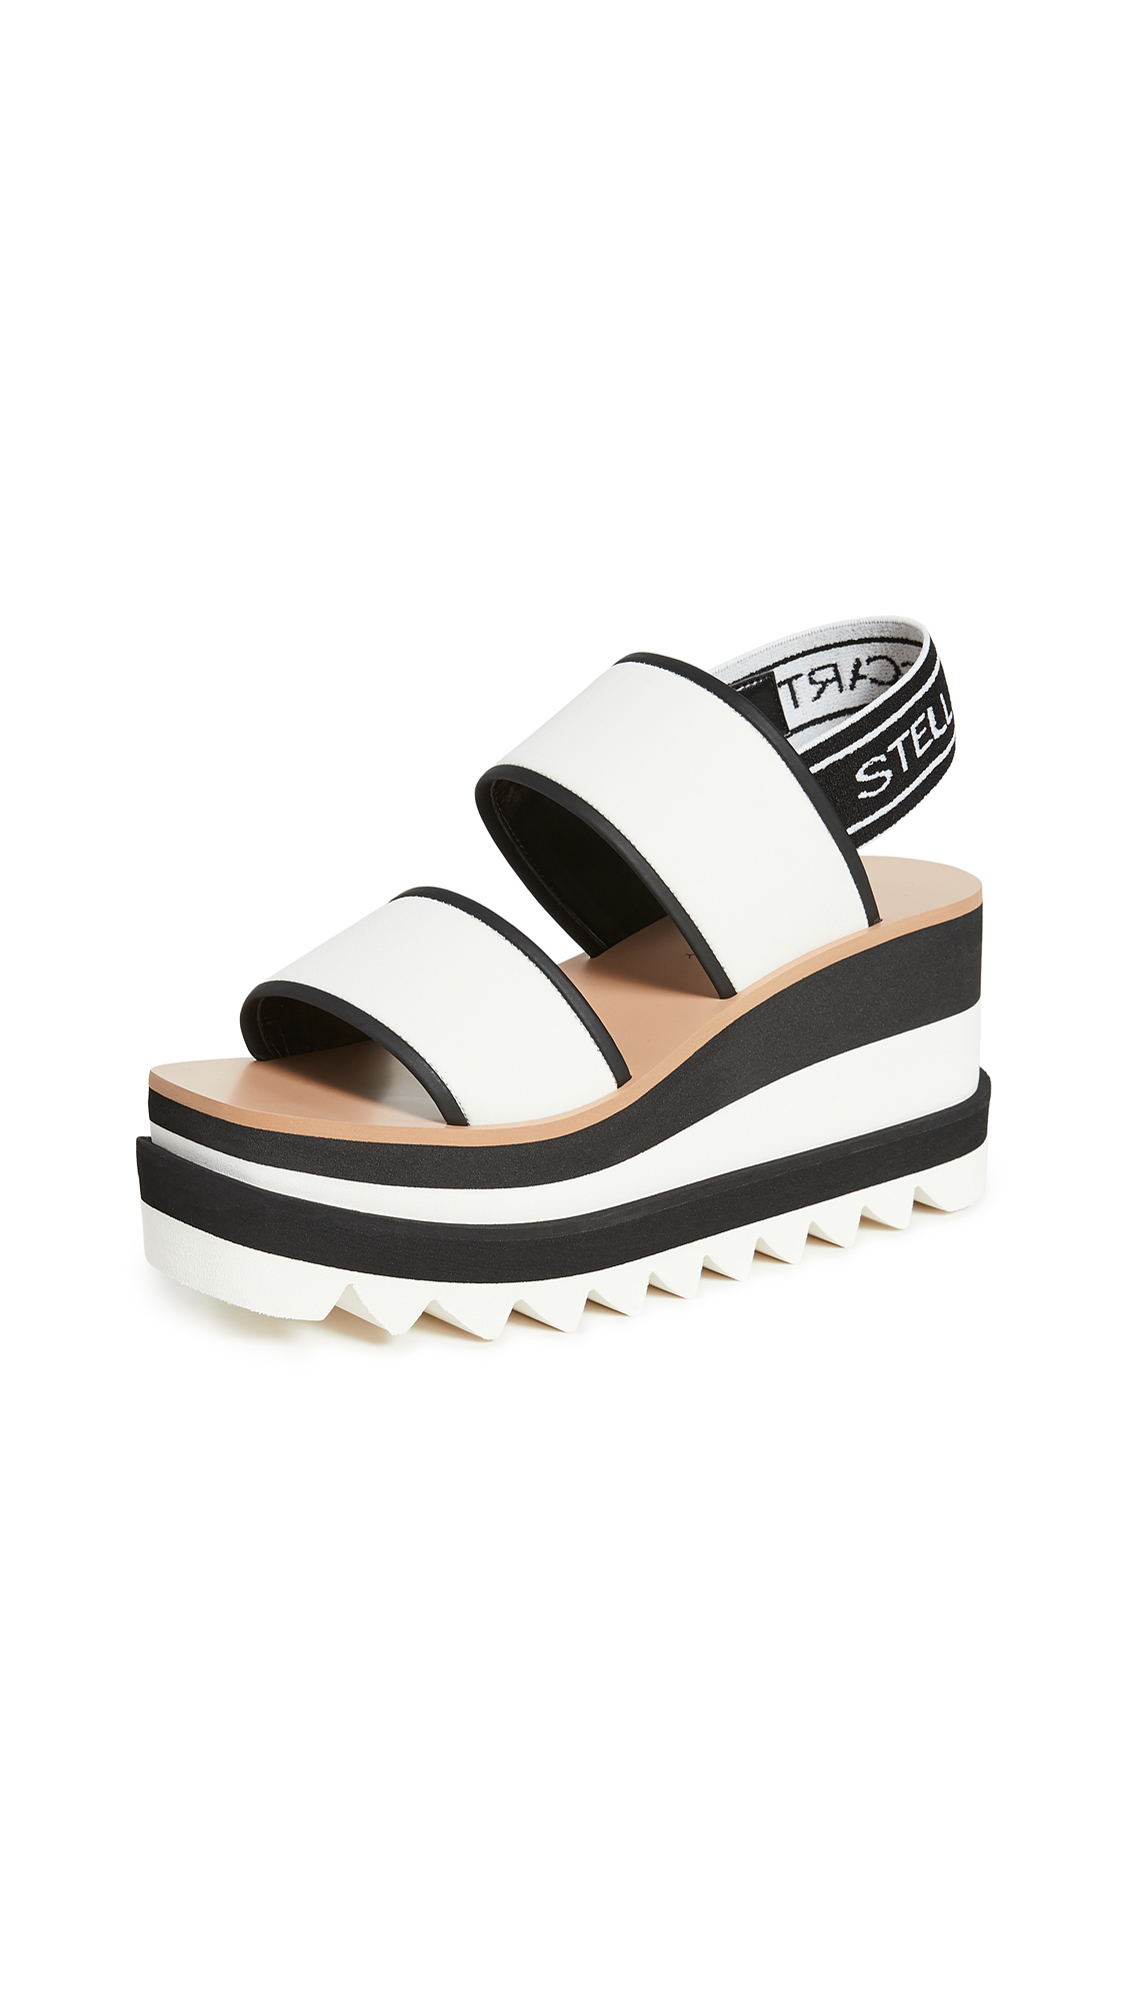 Stella McCartney Two Band Sandals – 40% Off Sale